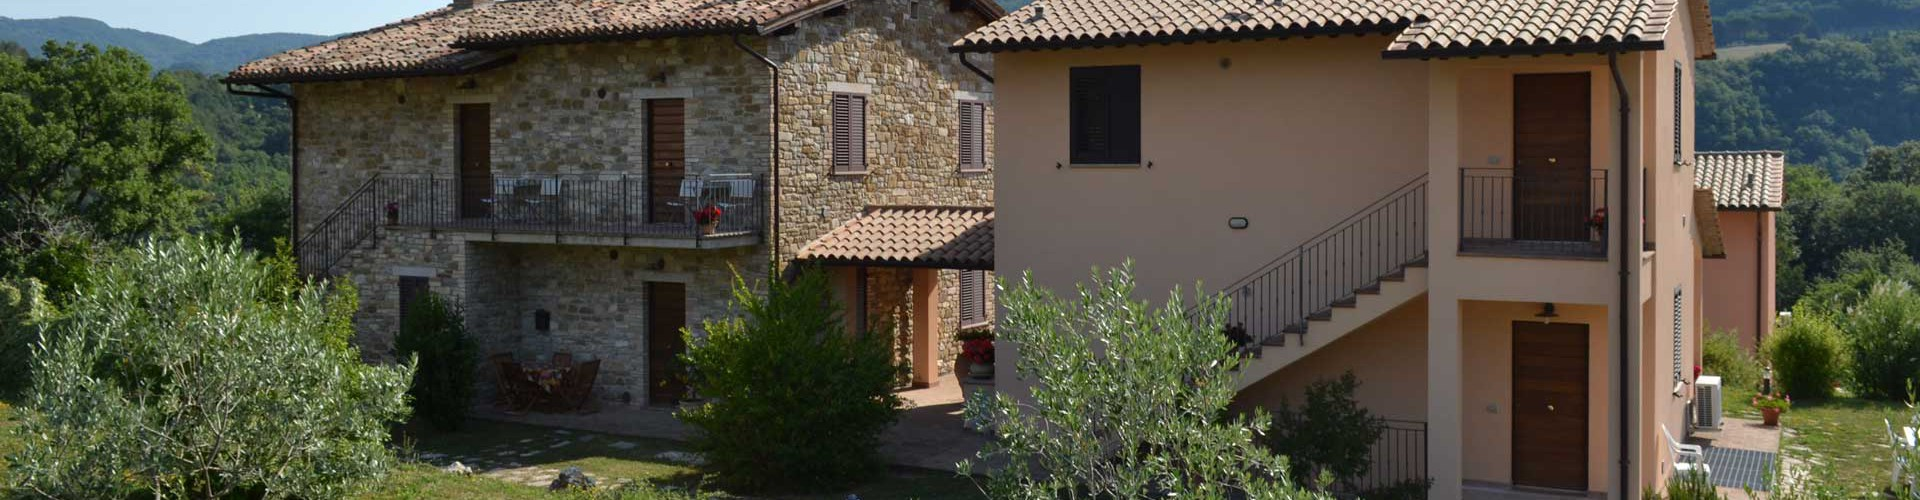 Relais Parco del Subasio | Agriturismo Assisi - OPfferte Speciali Featured Image